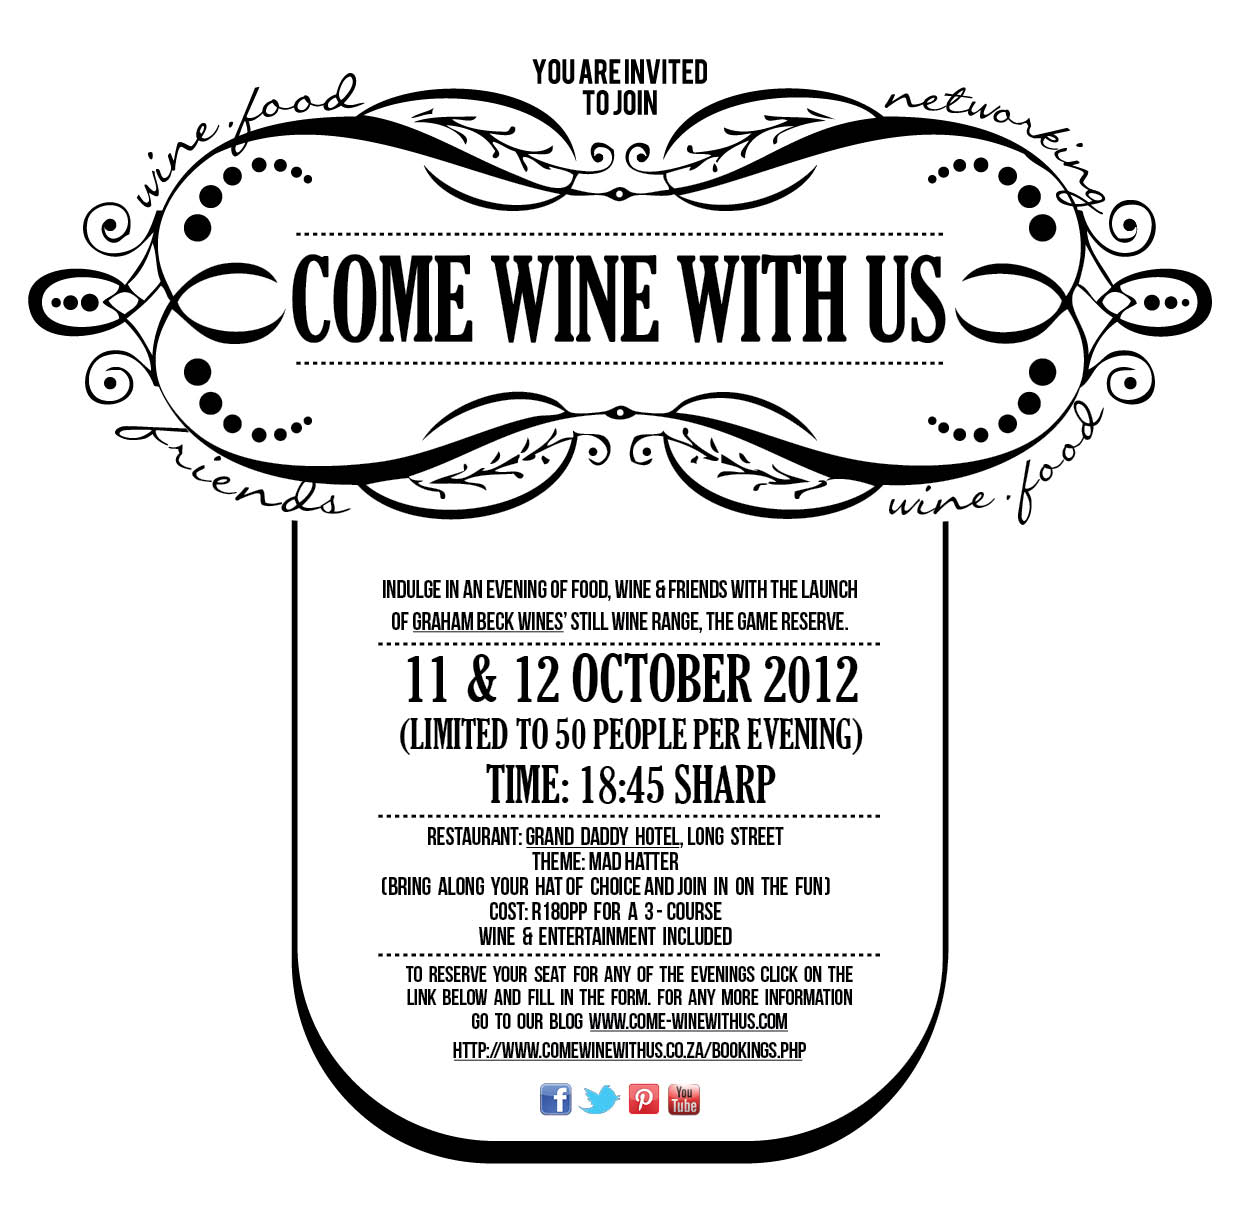 October Come wine with us – Graham Beck still wines @ Grand Daddy Hotel | CWWU GrandDaddy